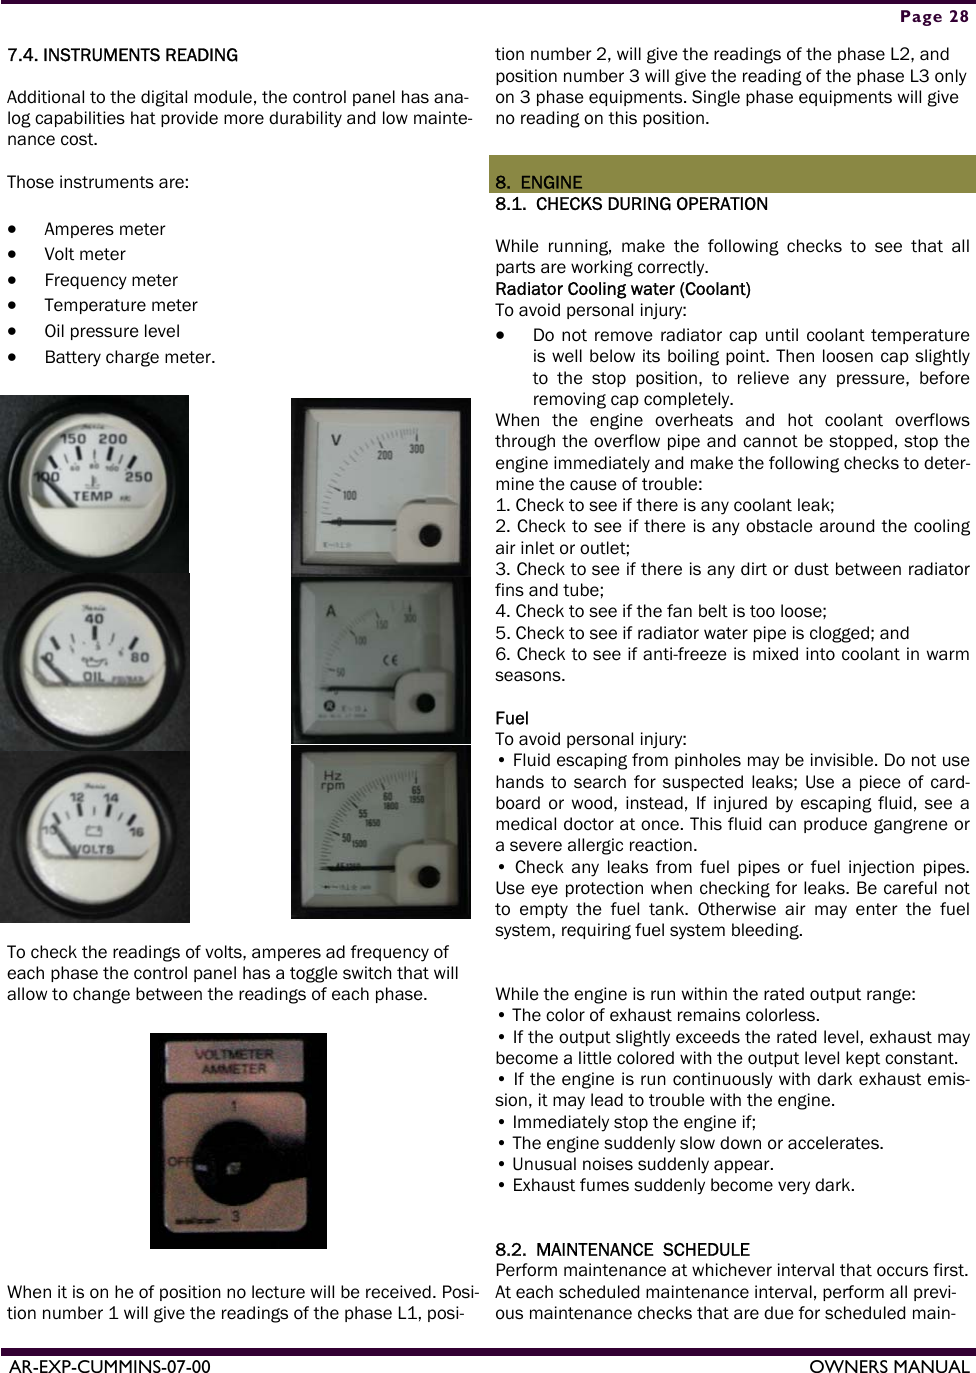 Armstrong World Industries Acum110 Users Manual Cummins Owners